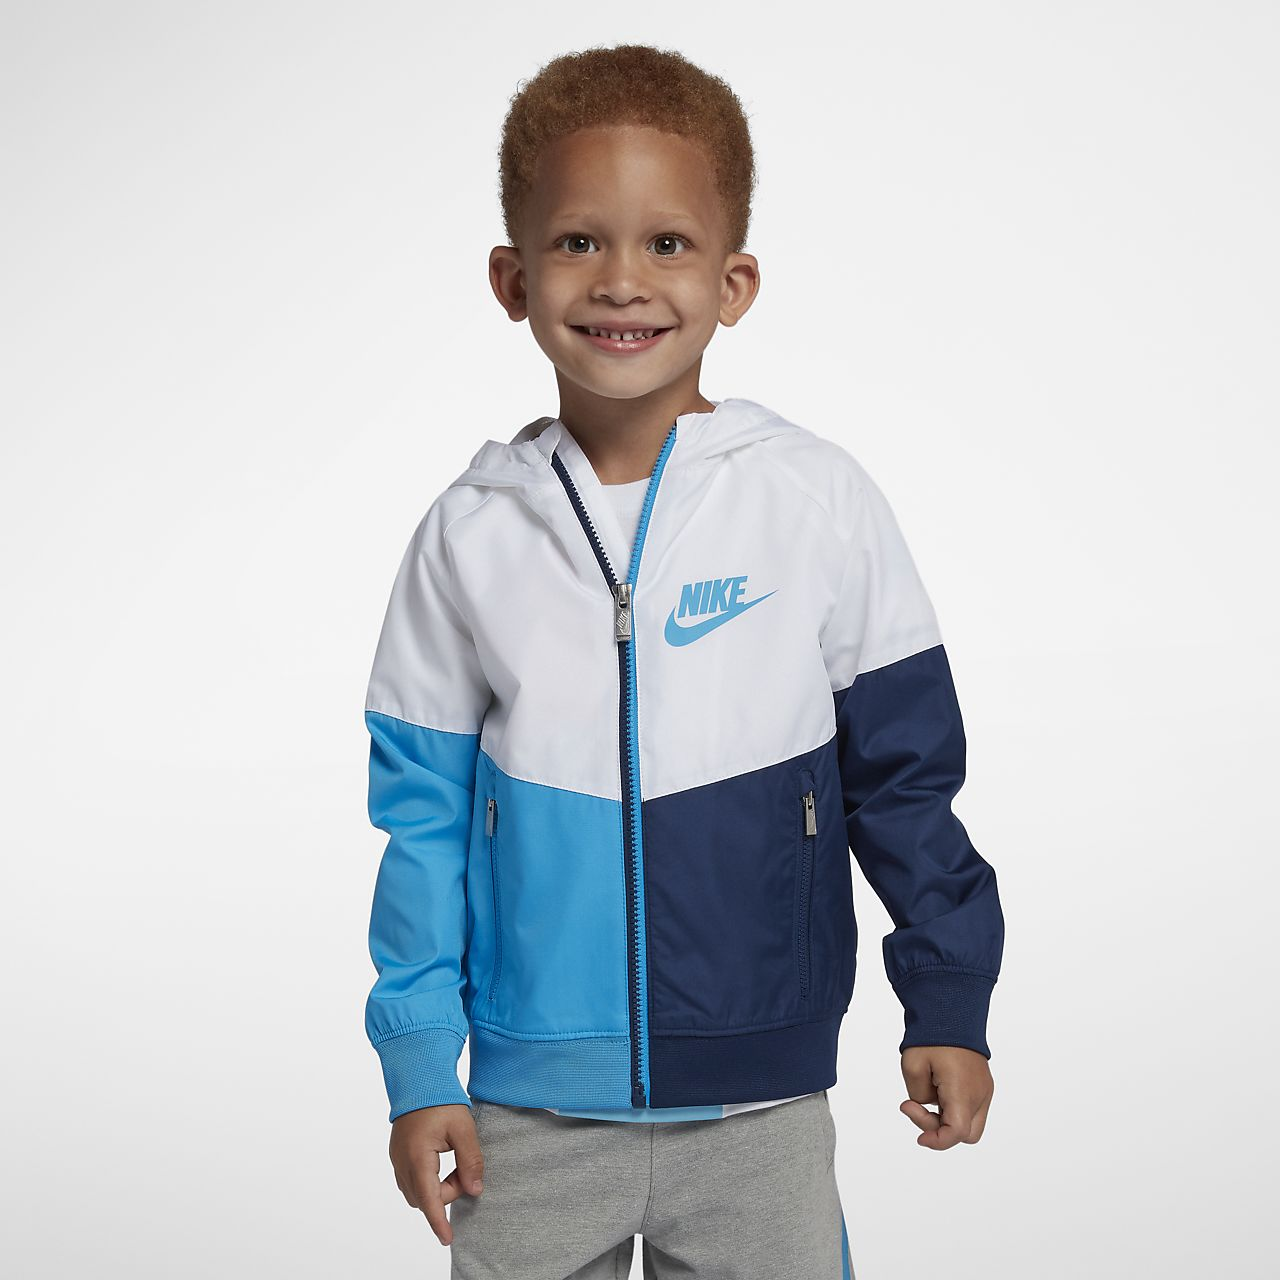 6929a2c4330bc Nike Sportswear Windrunner Younger Kids' (Boys') Full-Zip Jacket ...